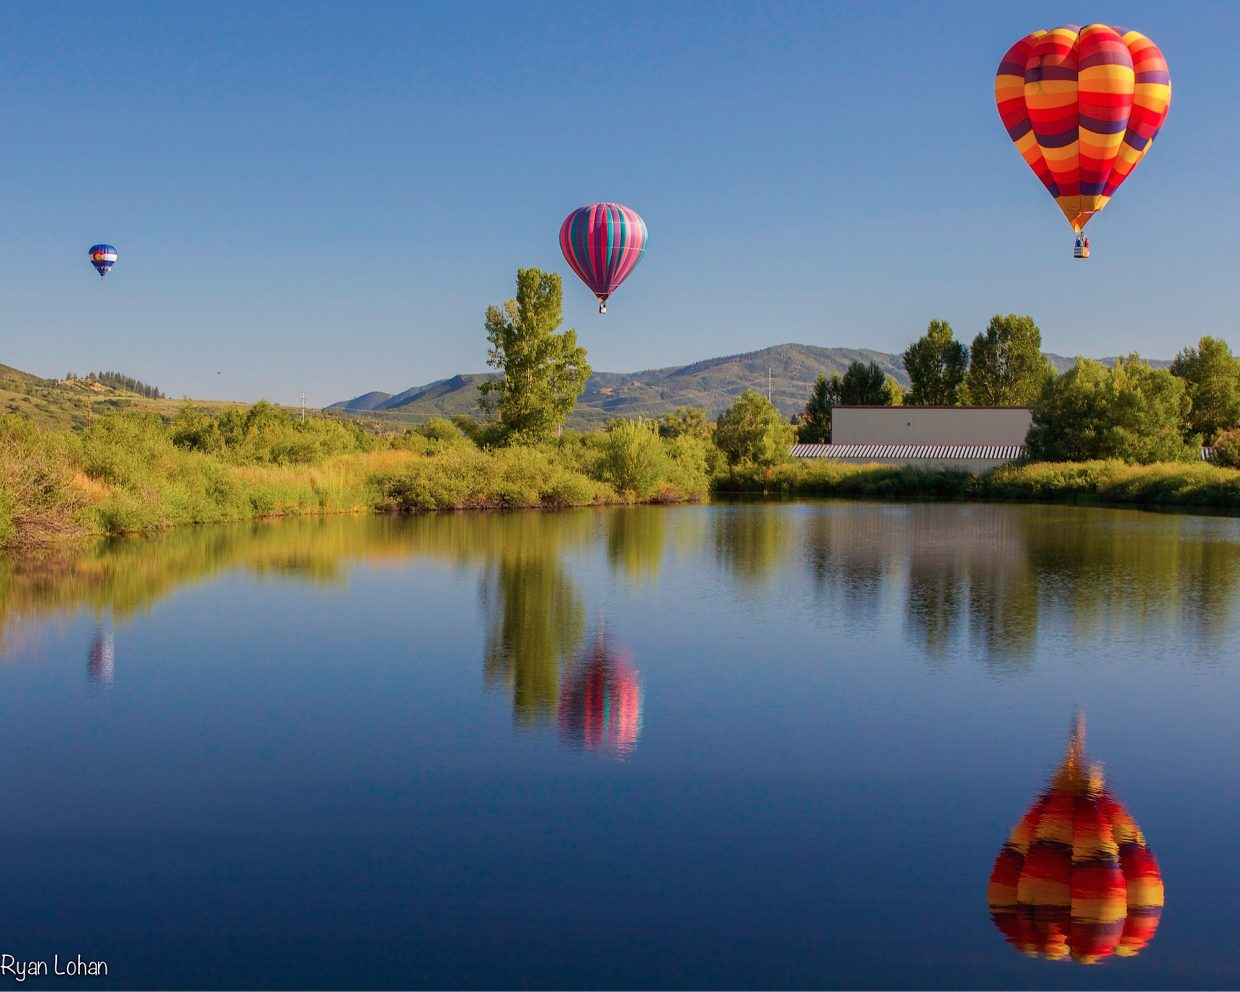 Hot Air Balloon Rodeo. Submitted by Ryan Lohan.